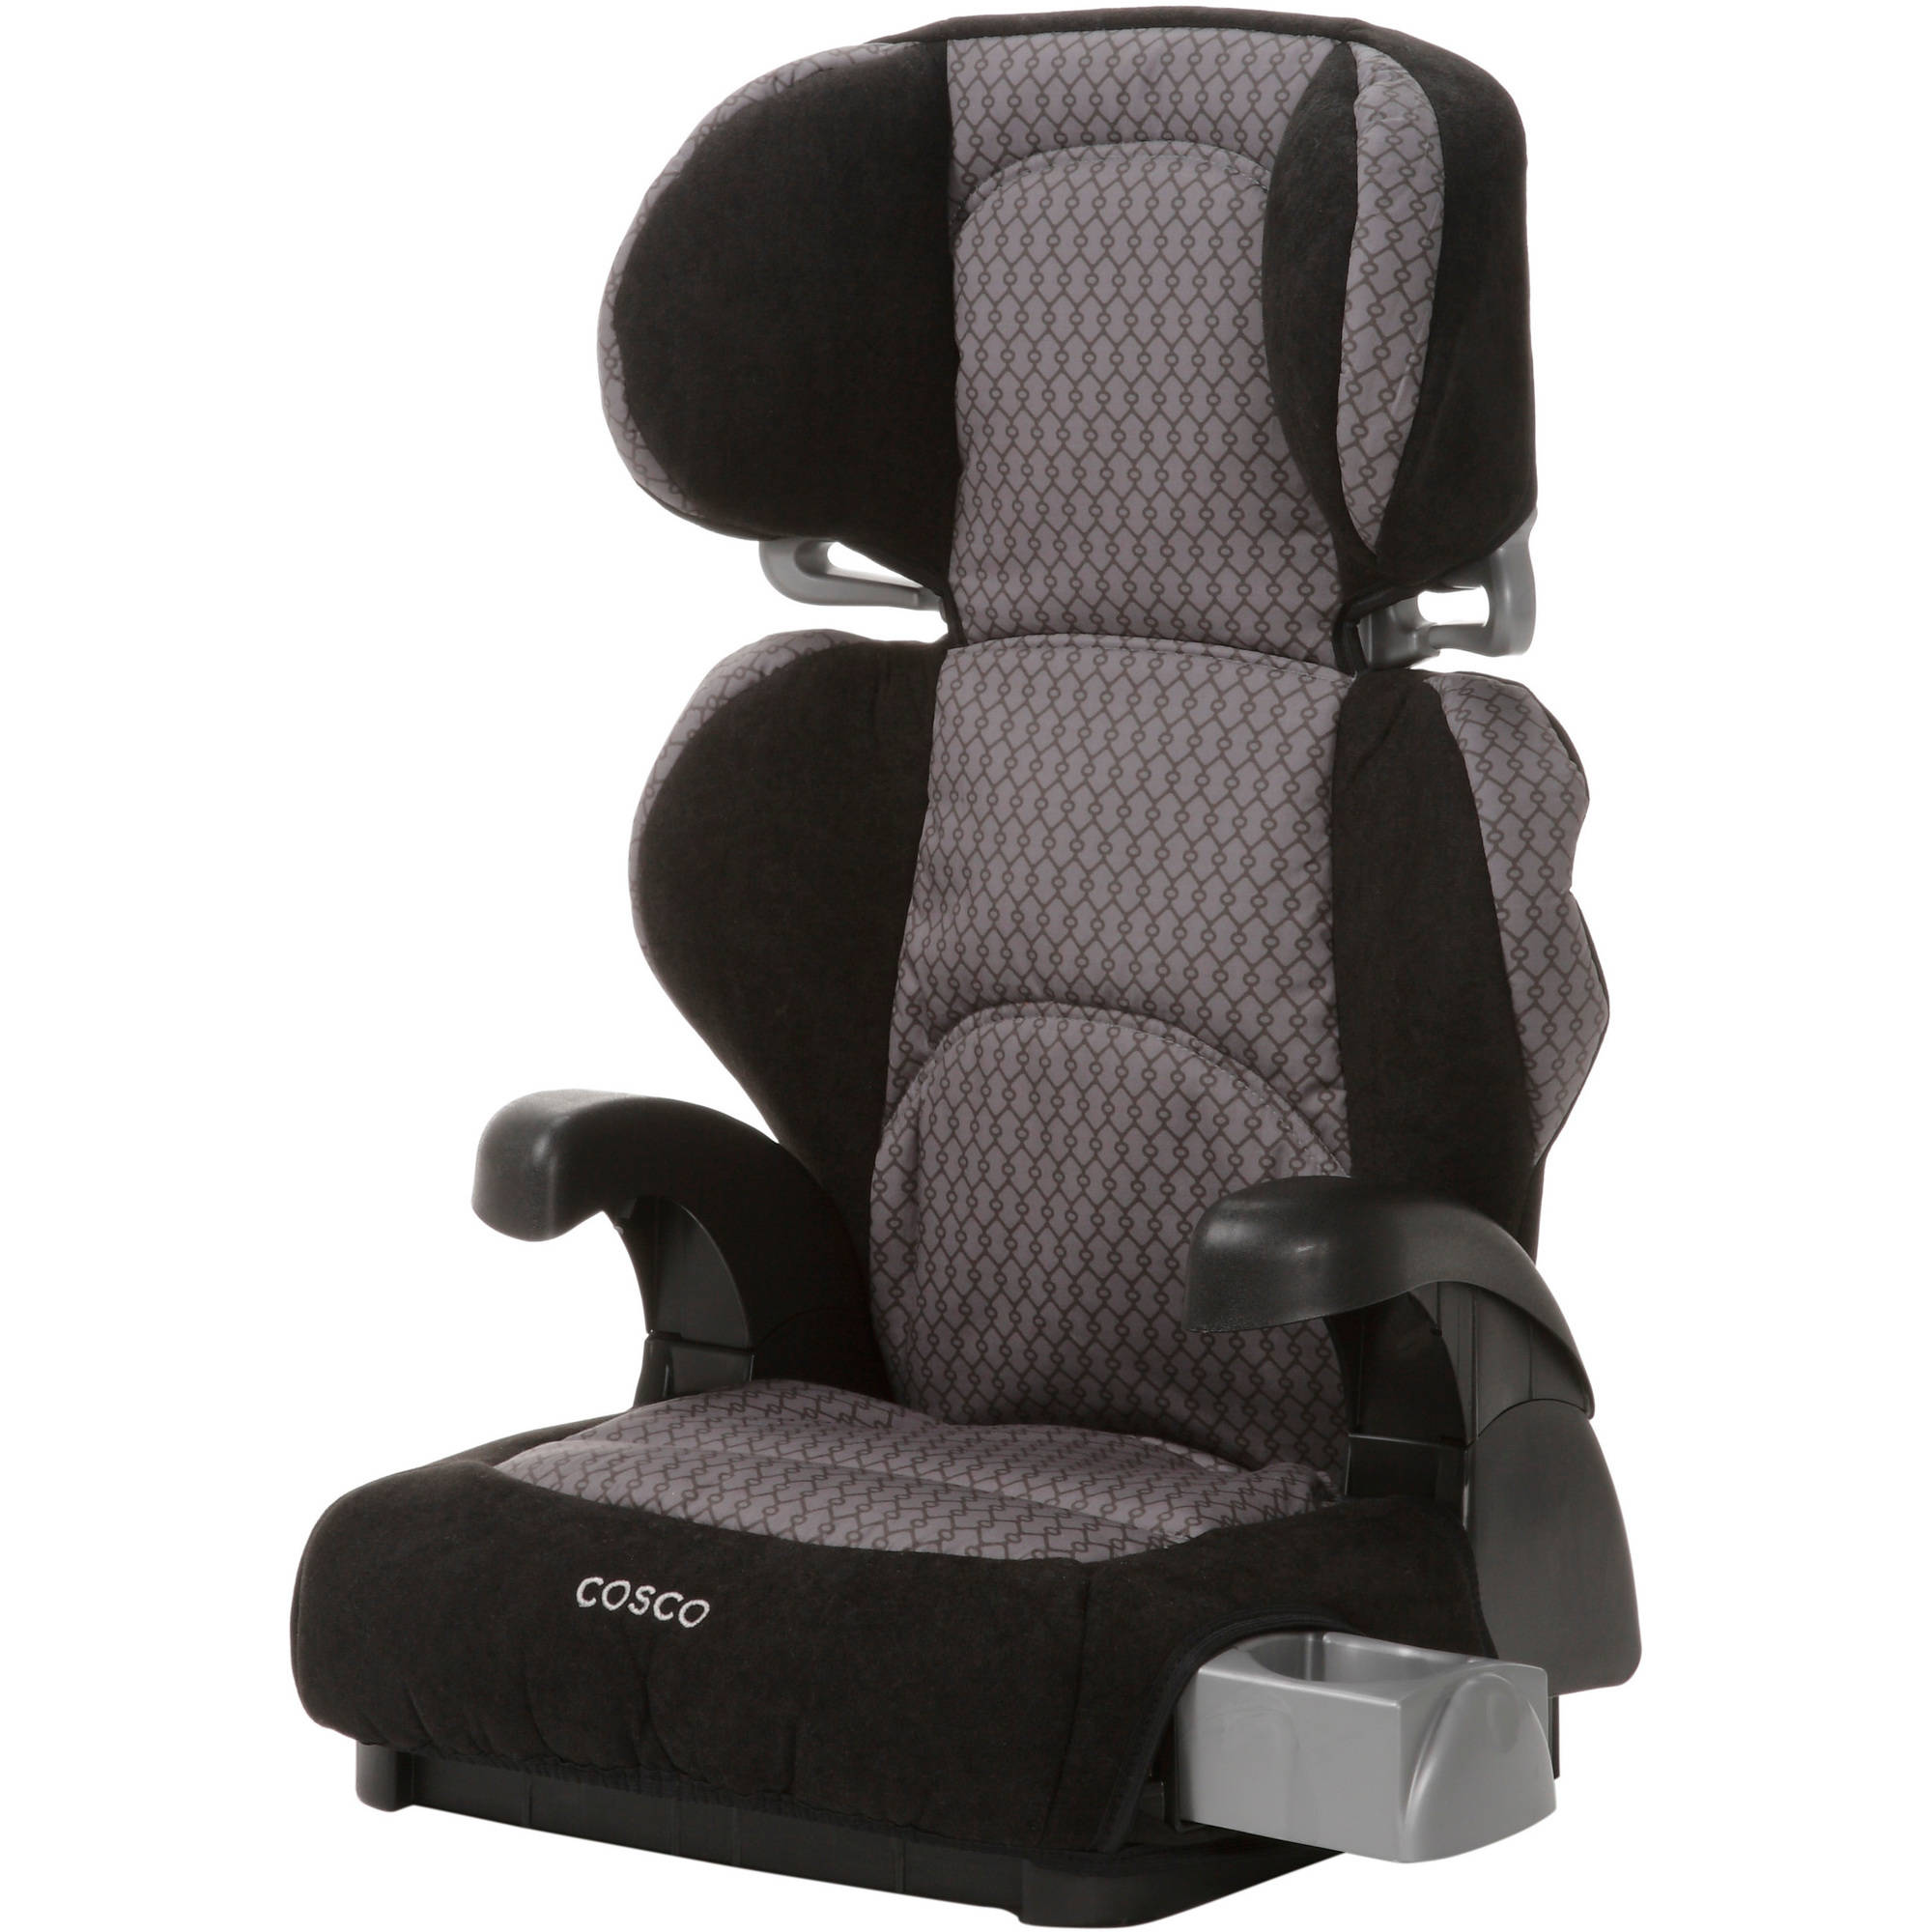 Cosco APT 40RF Convertible Car Seat, Choose your Color Walmart.com